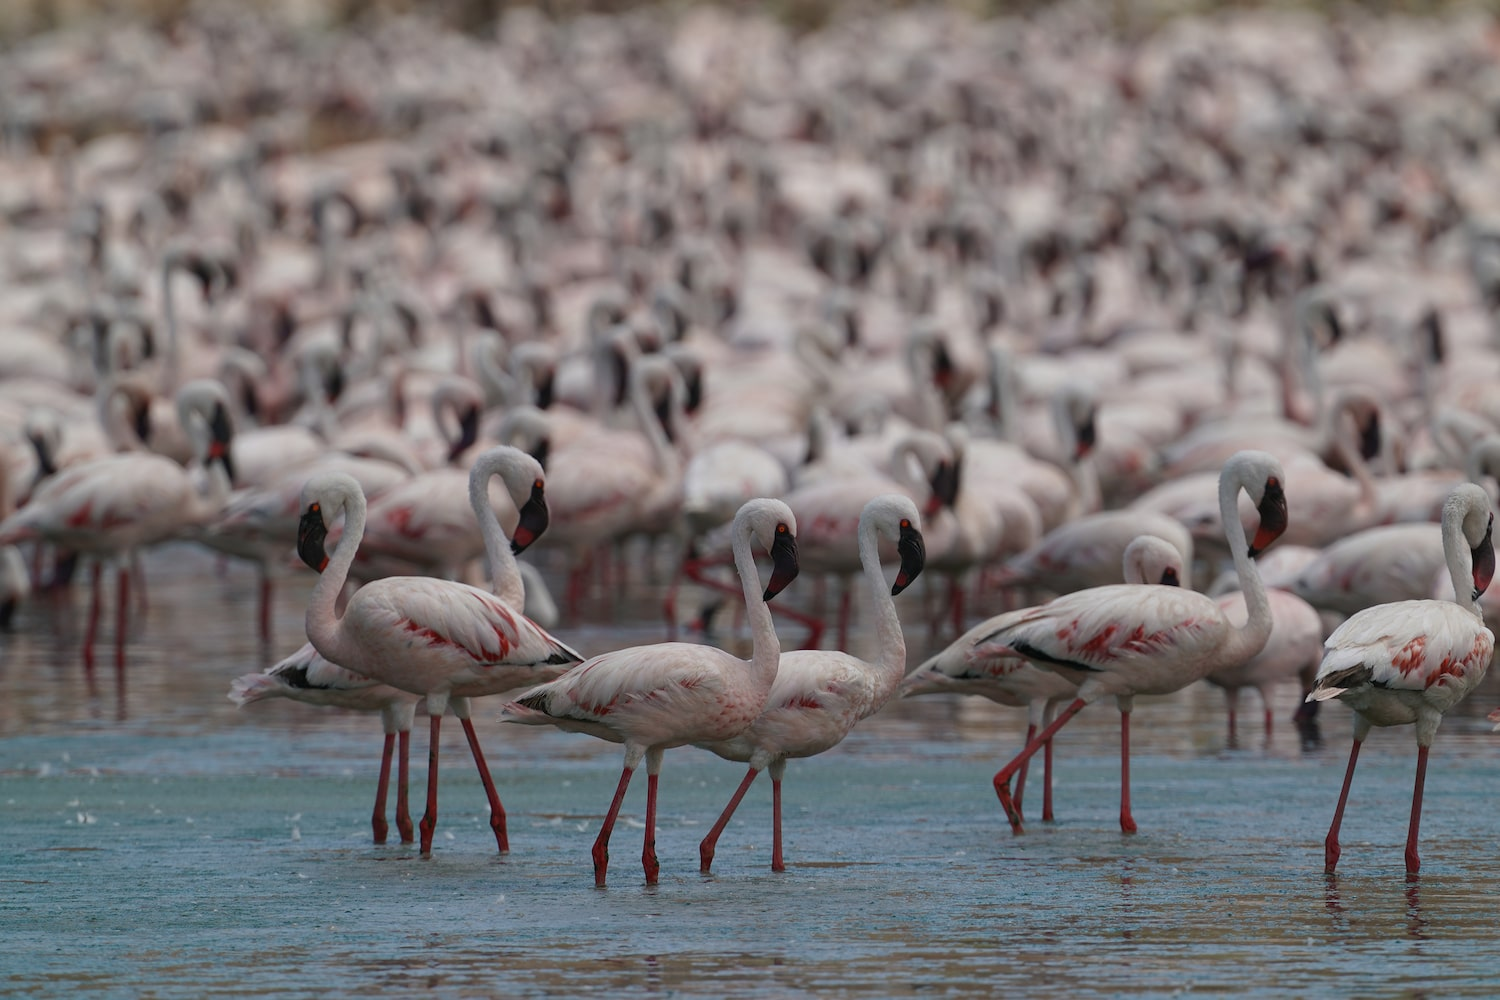 flock-of-flamingos-standing-in-lake-alpha-7III